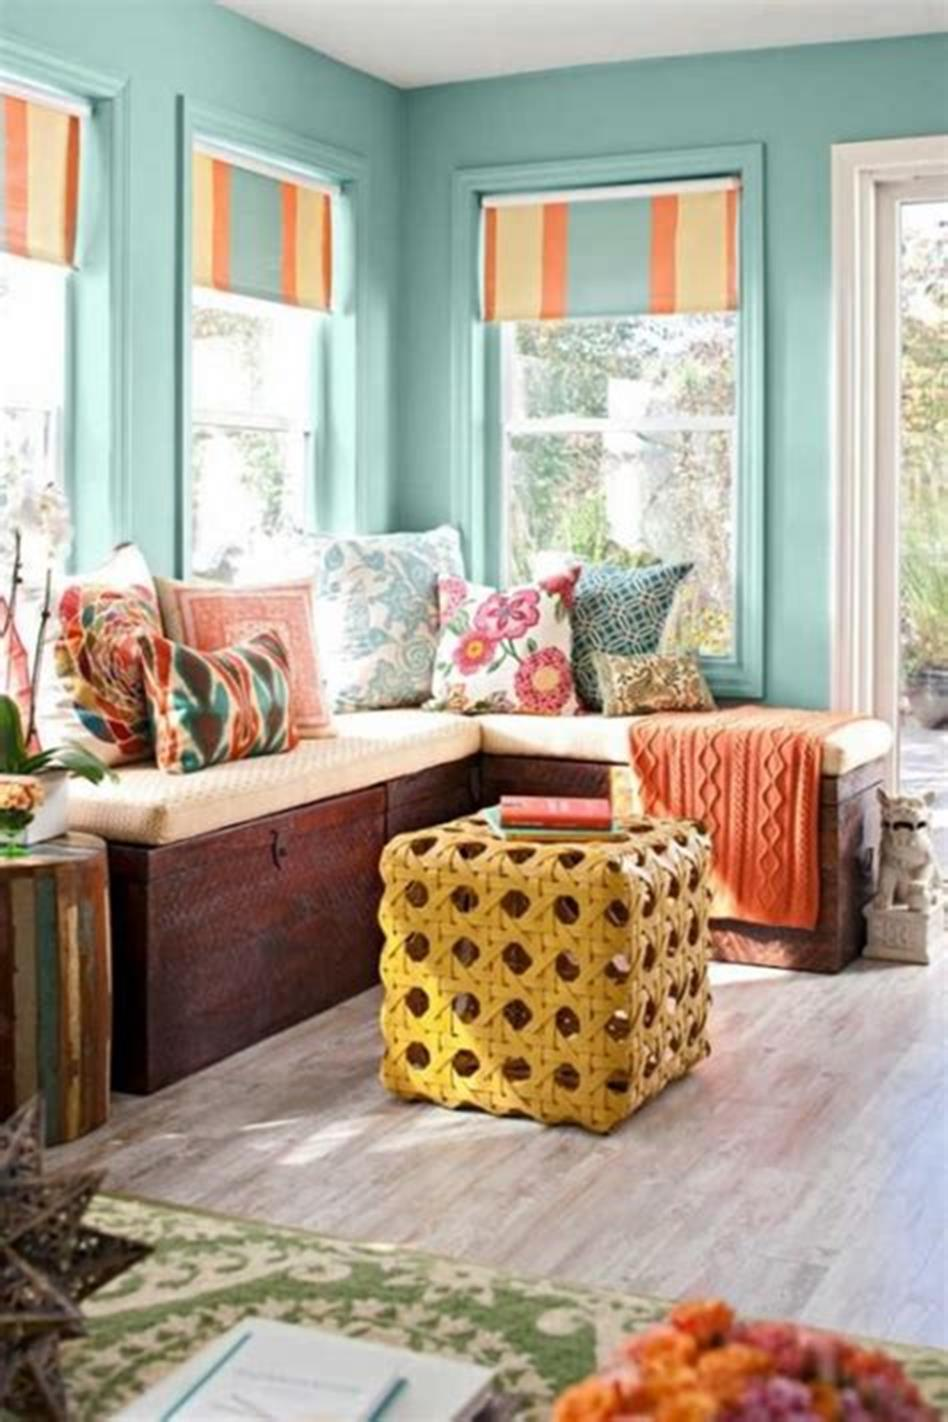 50 Most Popular Affordable Sunroom Design Ideas on a Budget 1